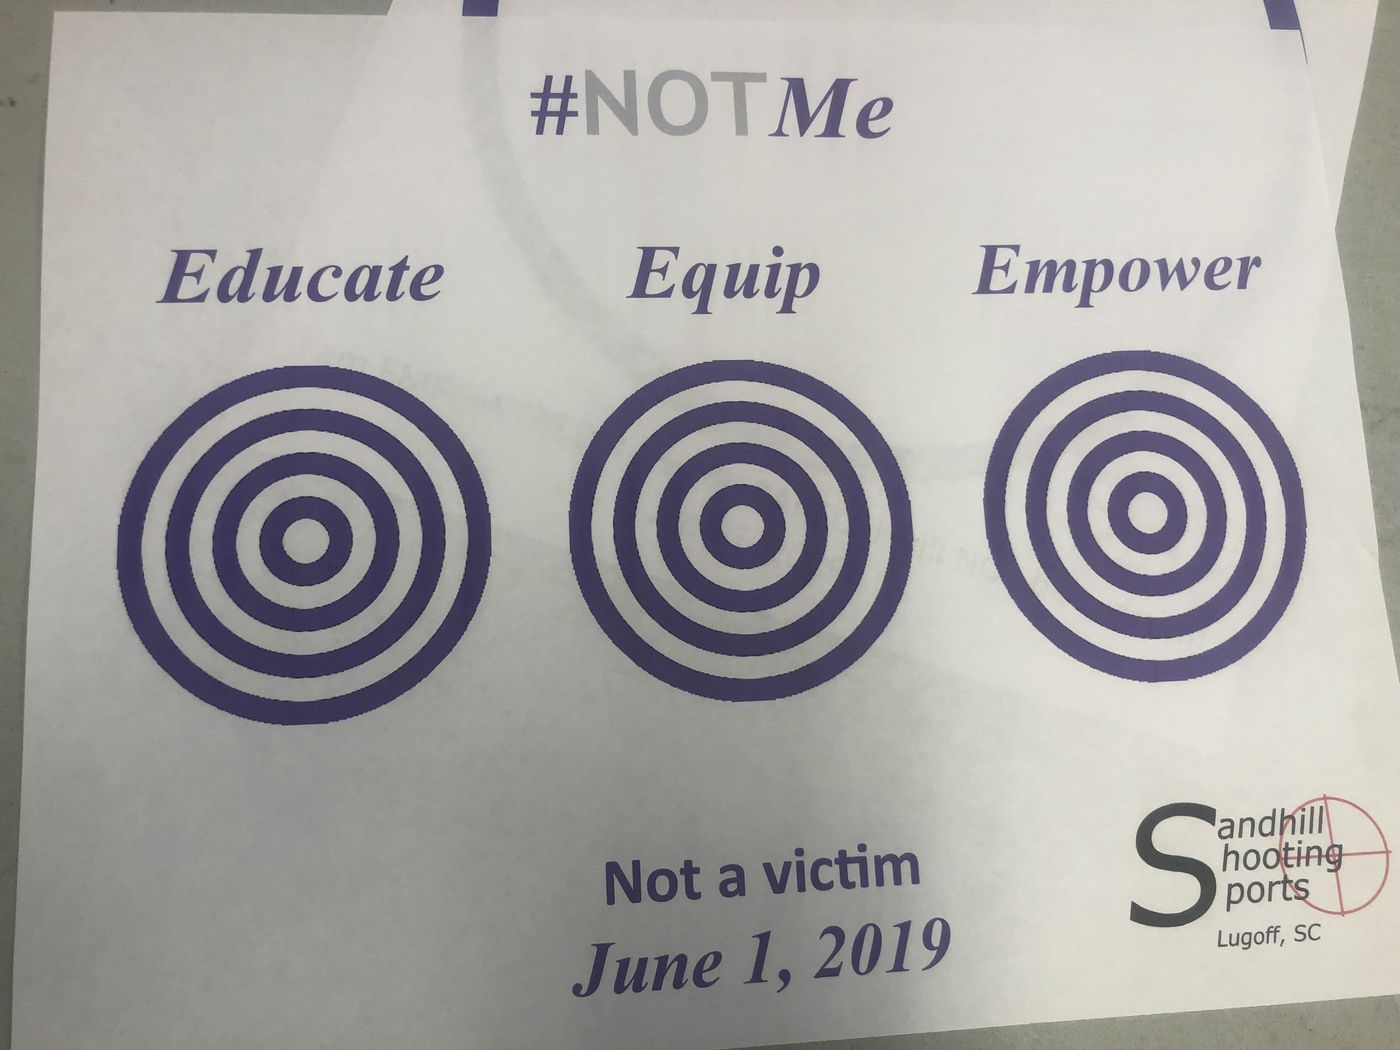 Women nationwide stood in solidarity with sister self-protectors to show the world they refuse to be a victim or to say Never Again to ever being a victim again. (Source: Jenna Cisneros/WIS)